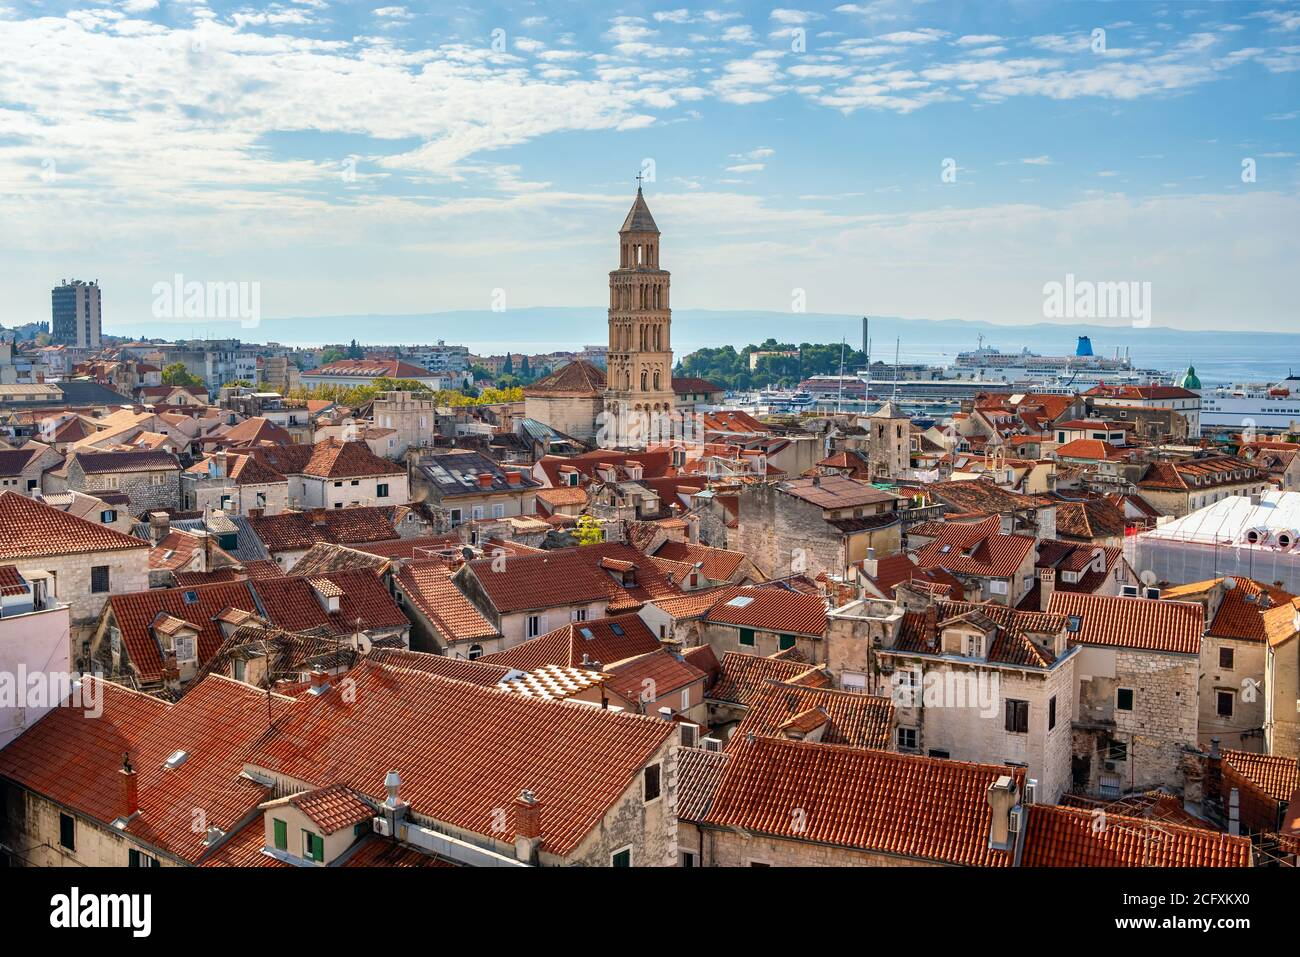 Bell tower and historic buildings in old town of Split Stock Photo